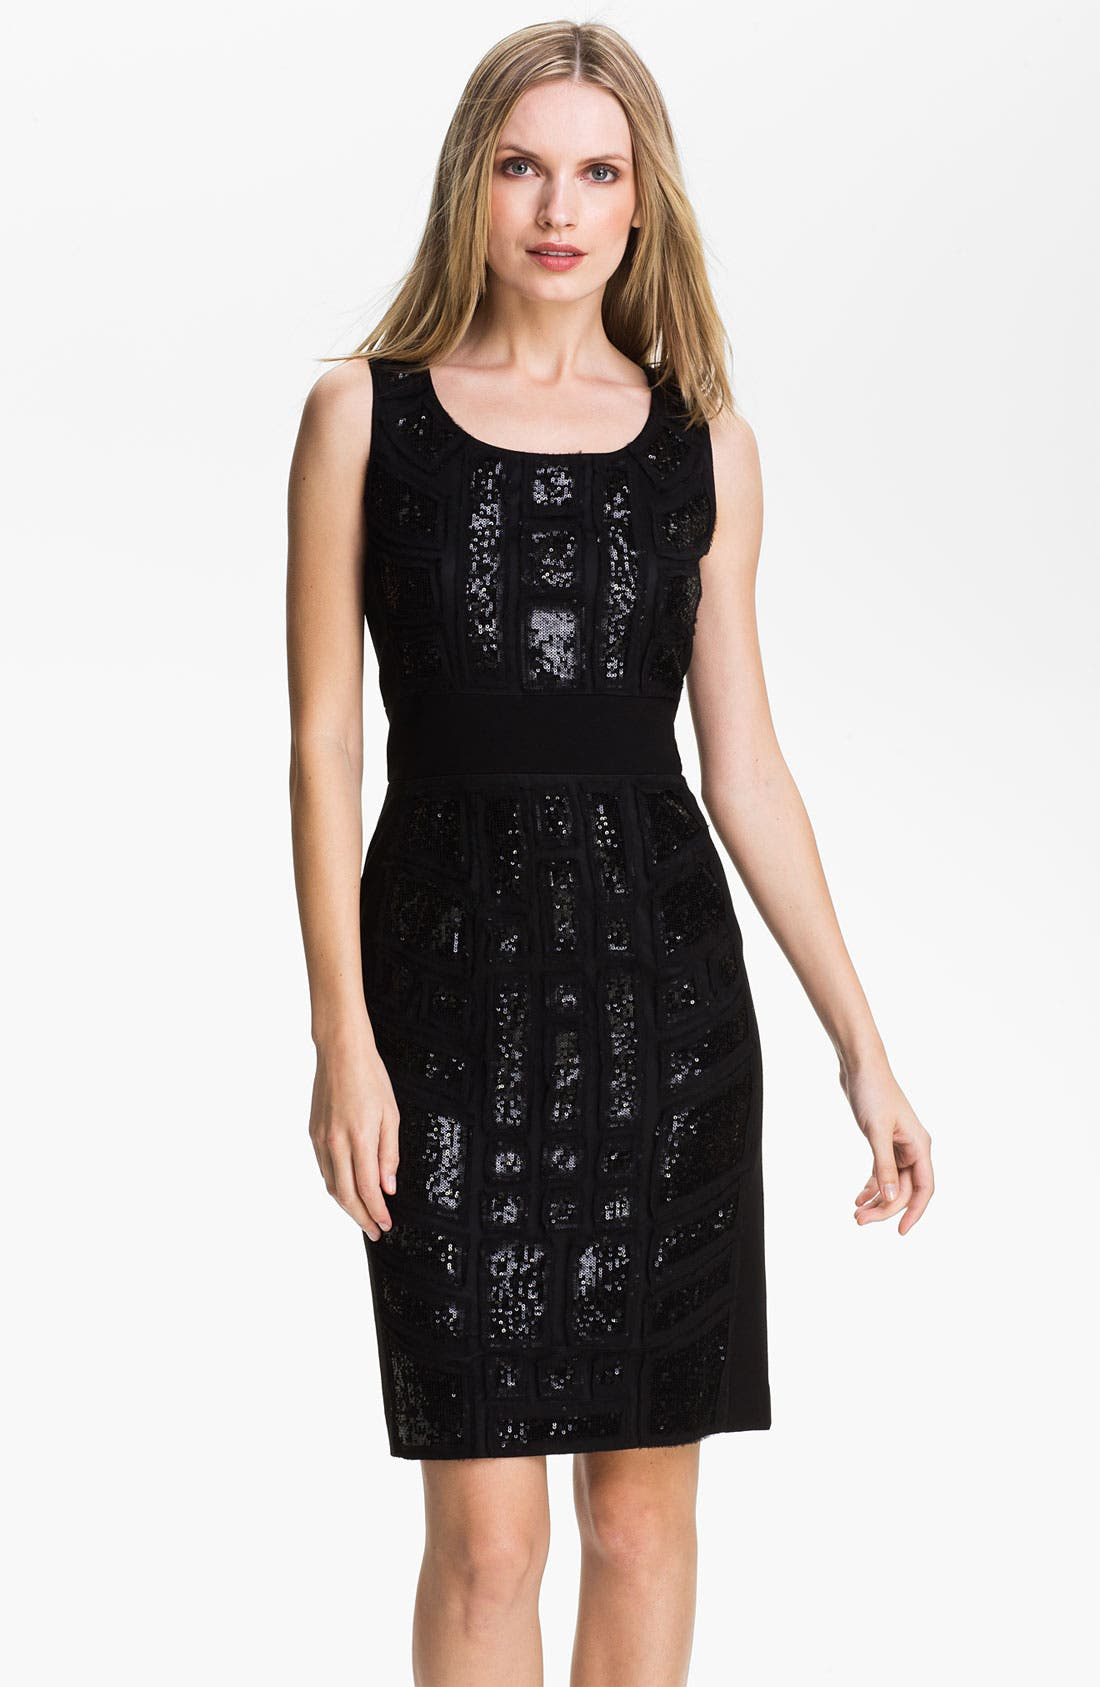 Alternate Image 1 Selected - Lafayette 148 New York 'Brooke' Embellished Dress